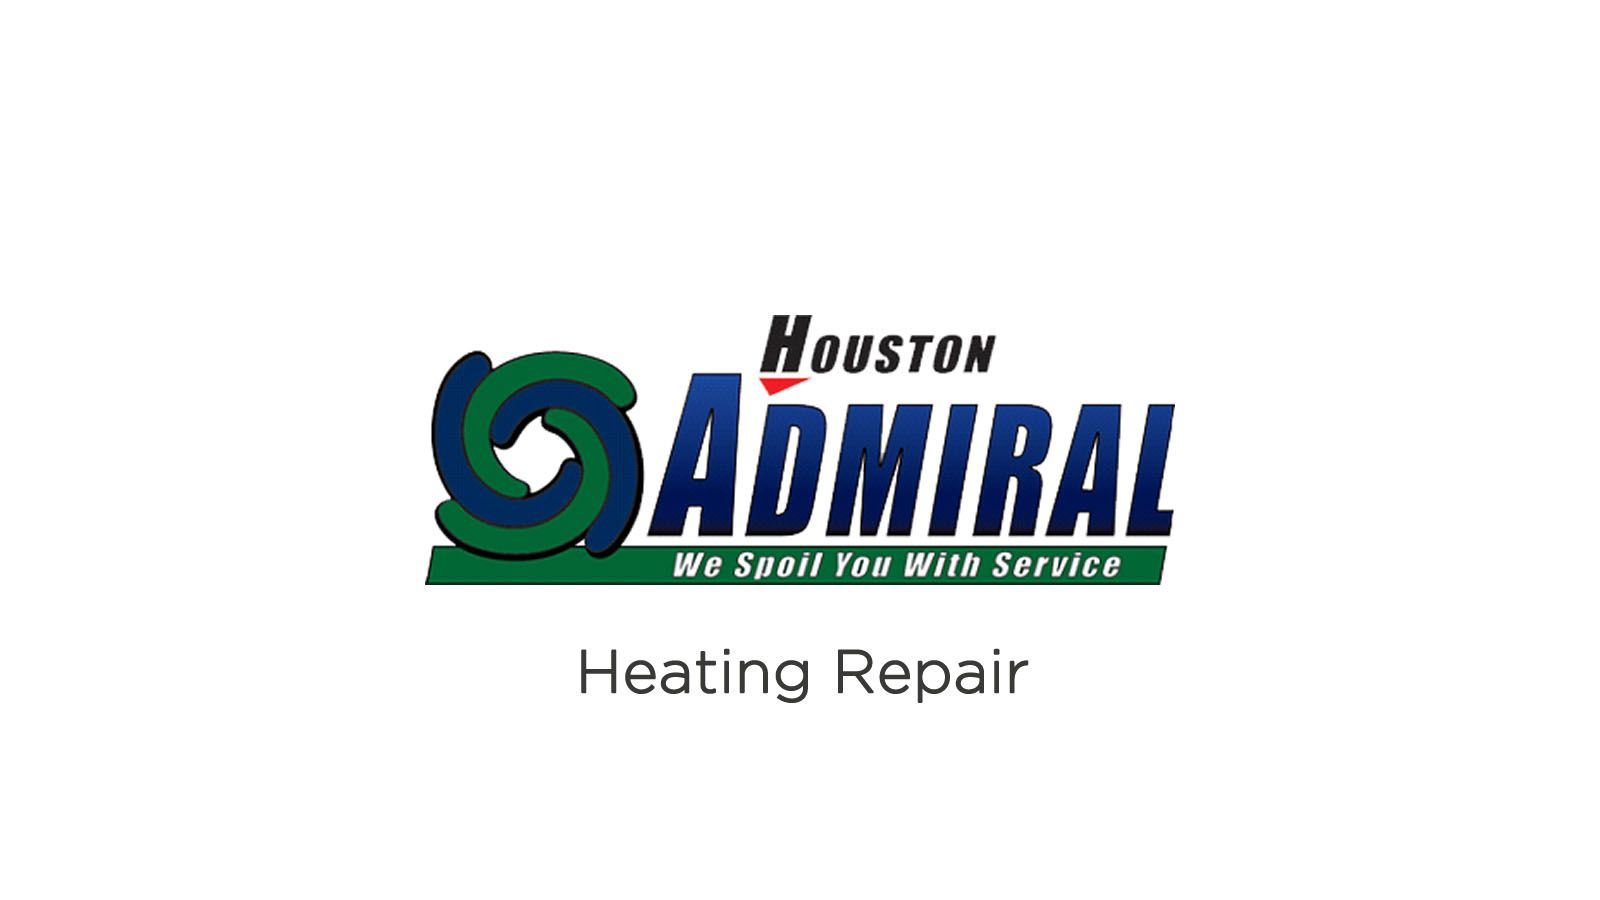 Check Out Or Video On Heating Repair Https Www Youtube Com